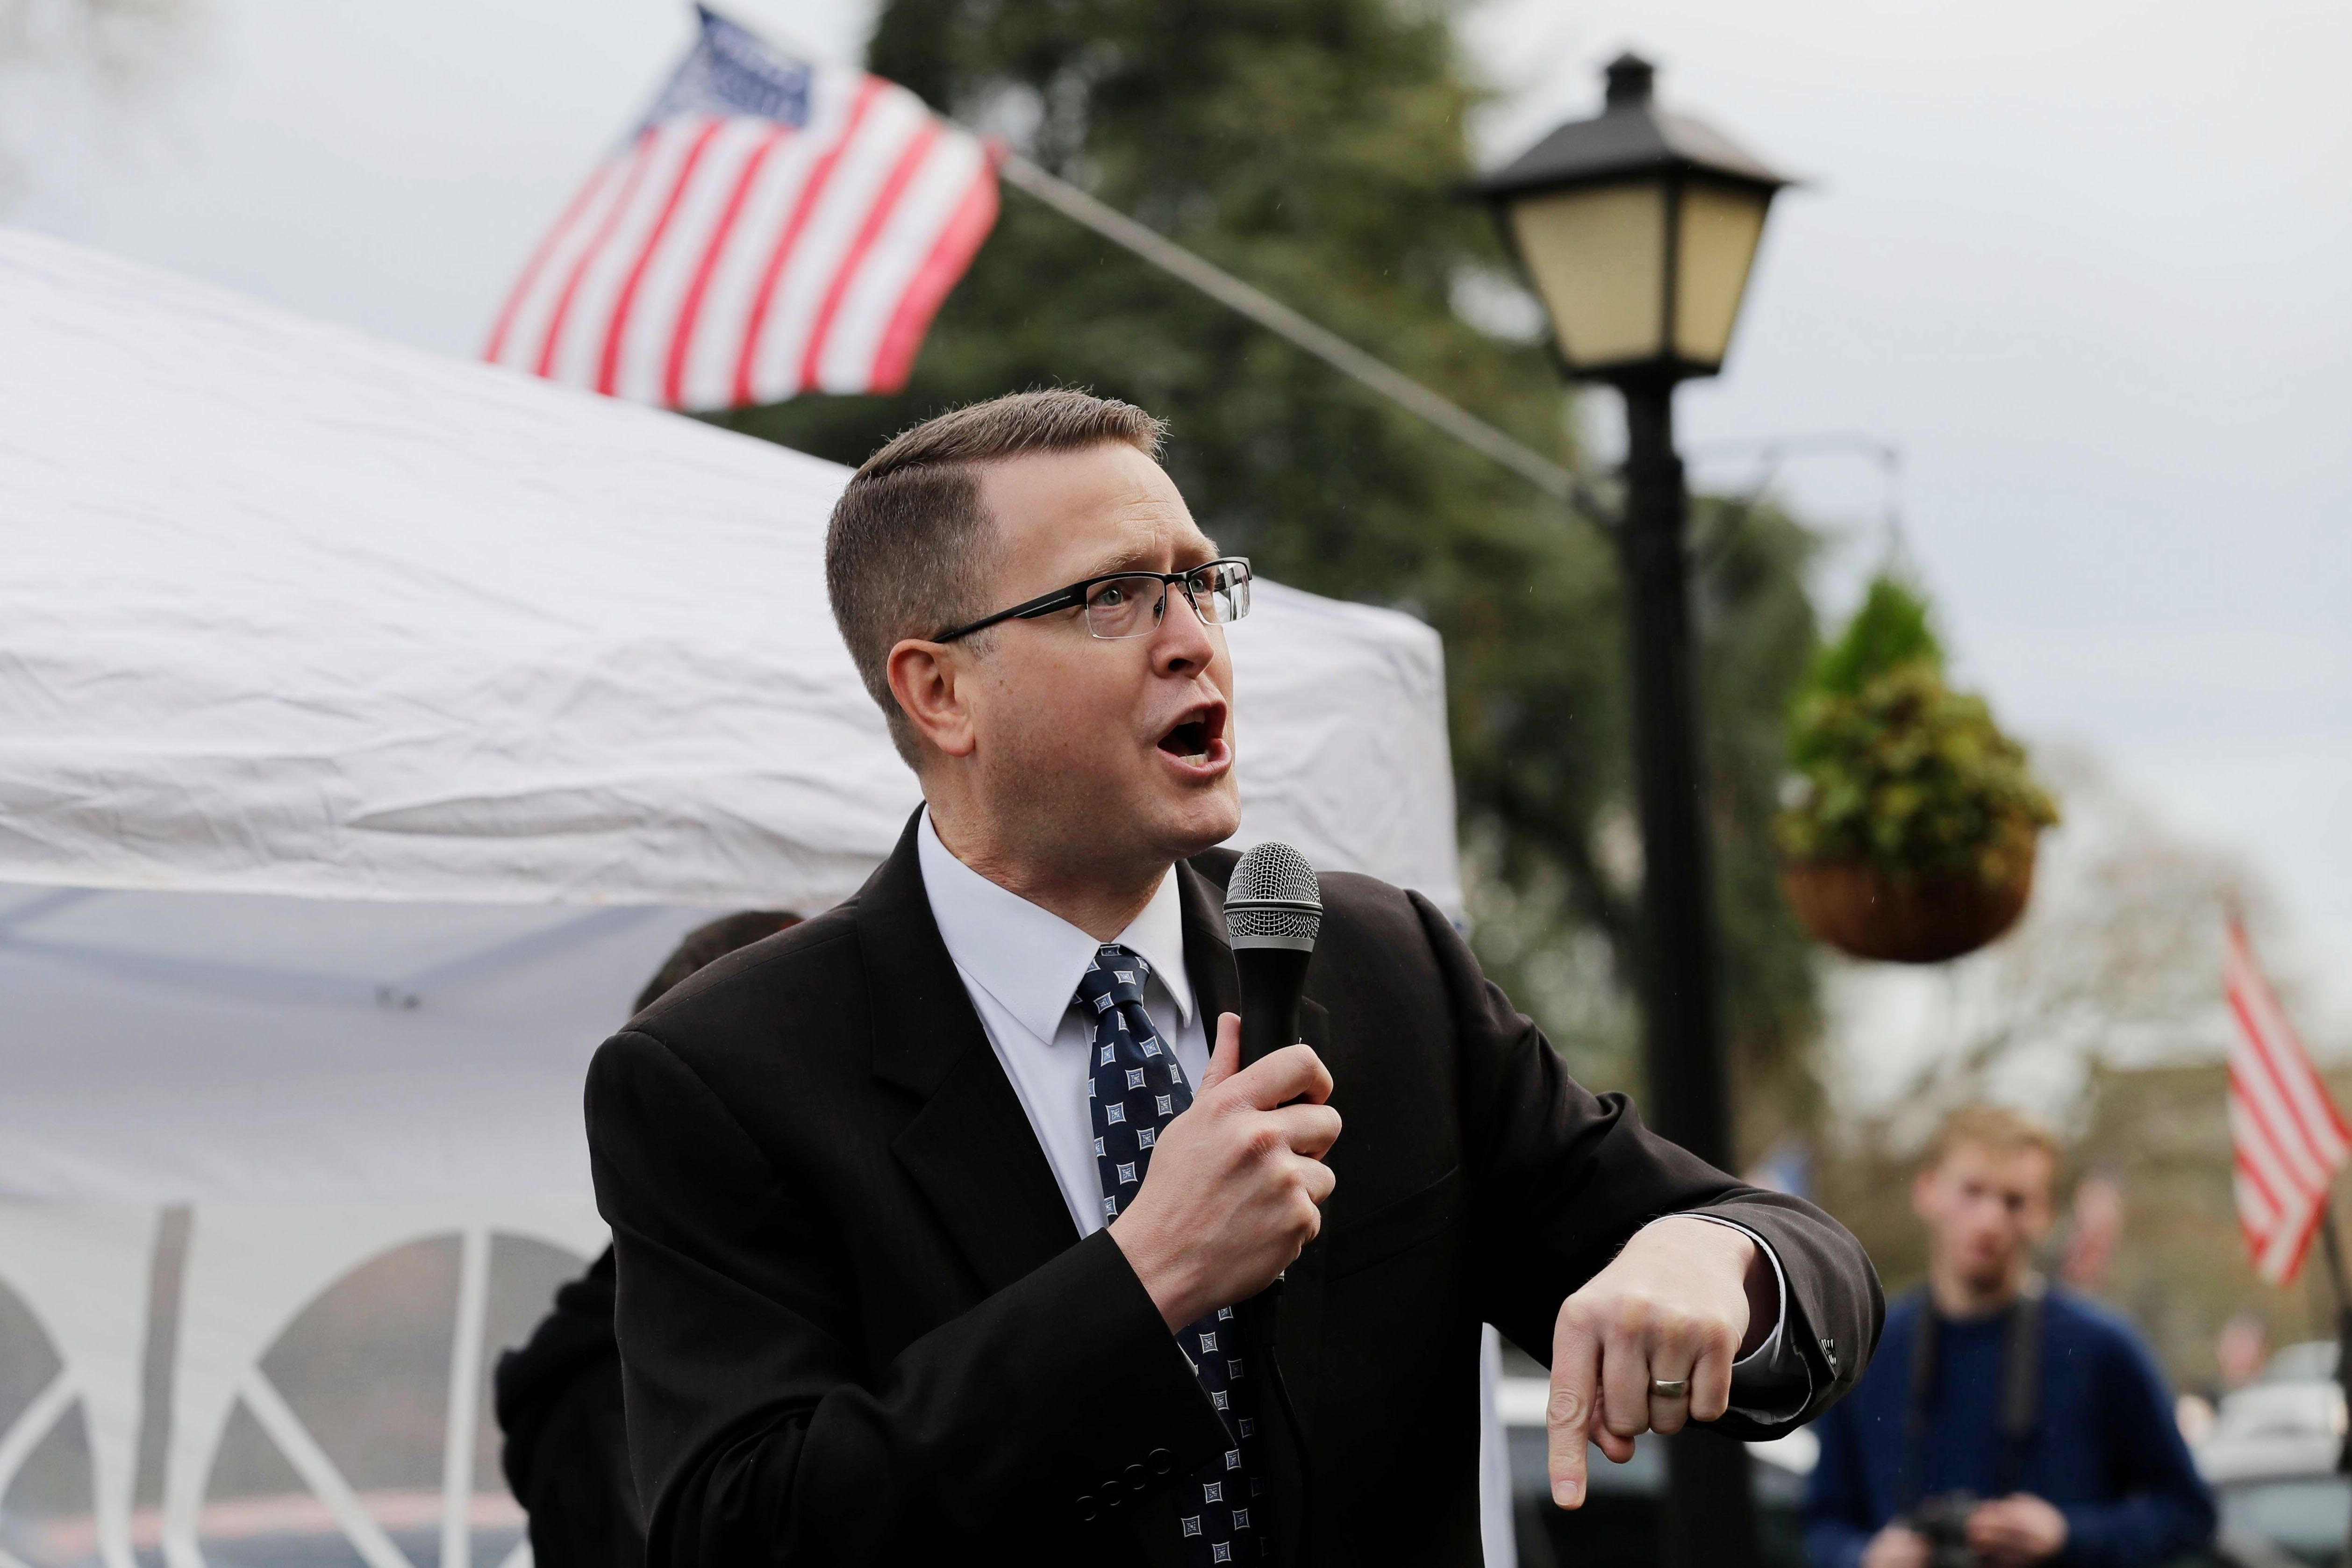 A Washington State Republican Was Caught Chatting With Some Very Crazy, Very Racist, Very Well-Armed People